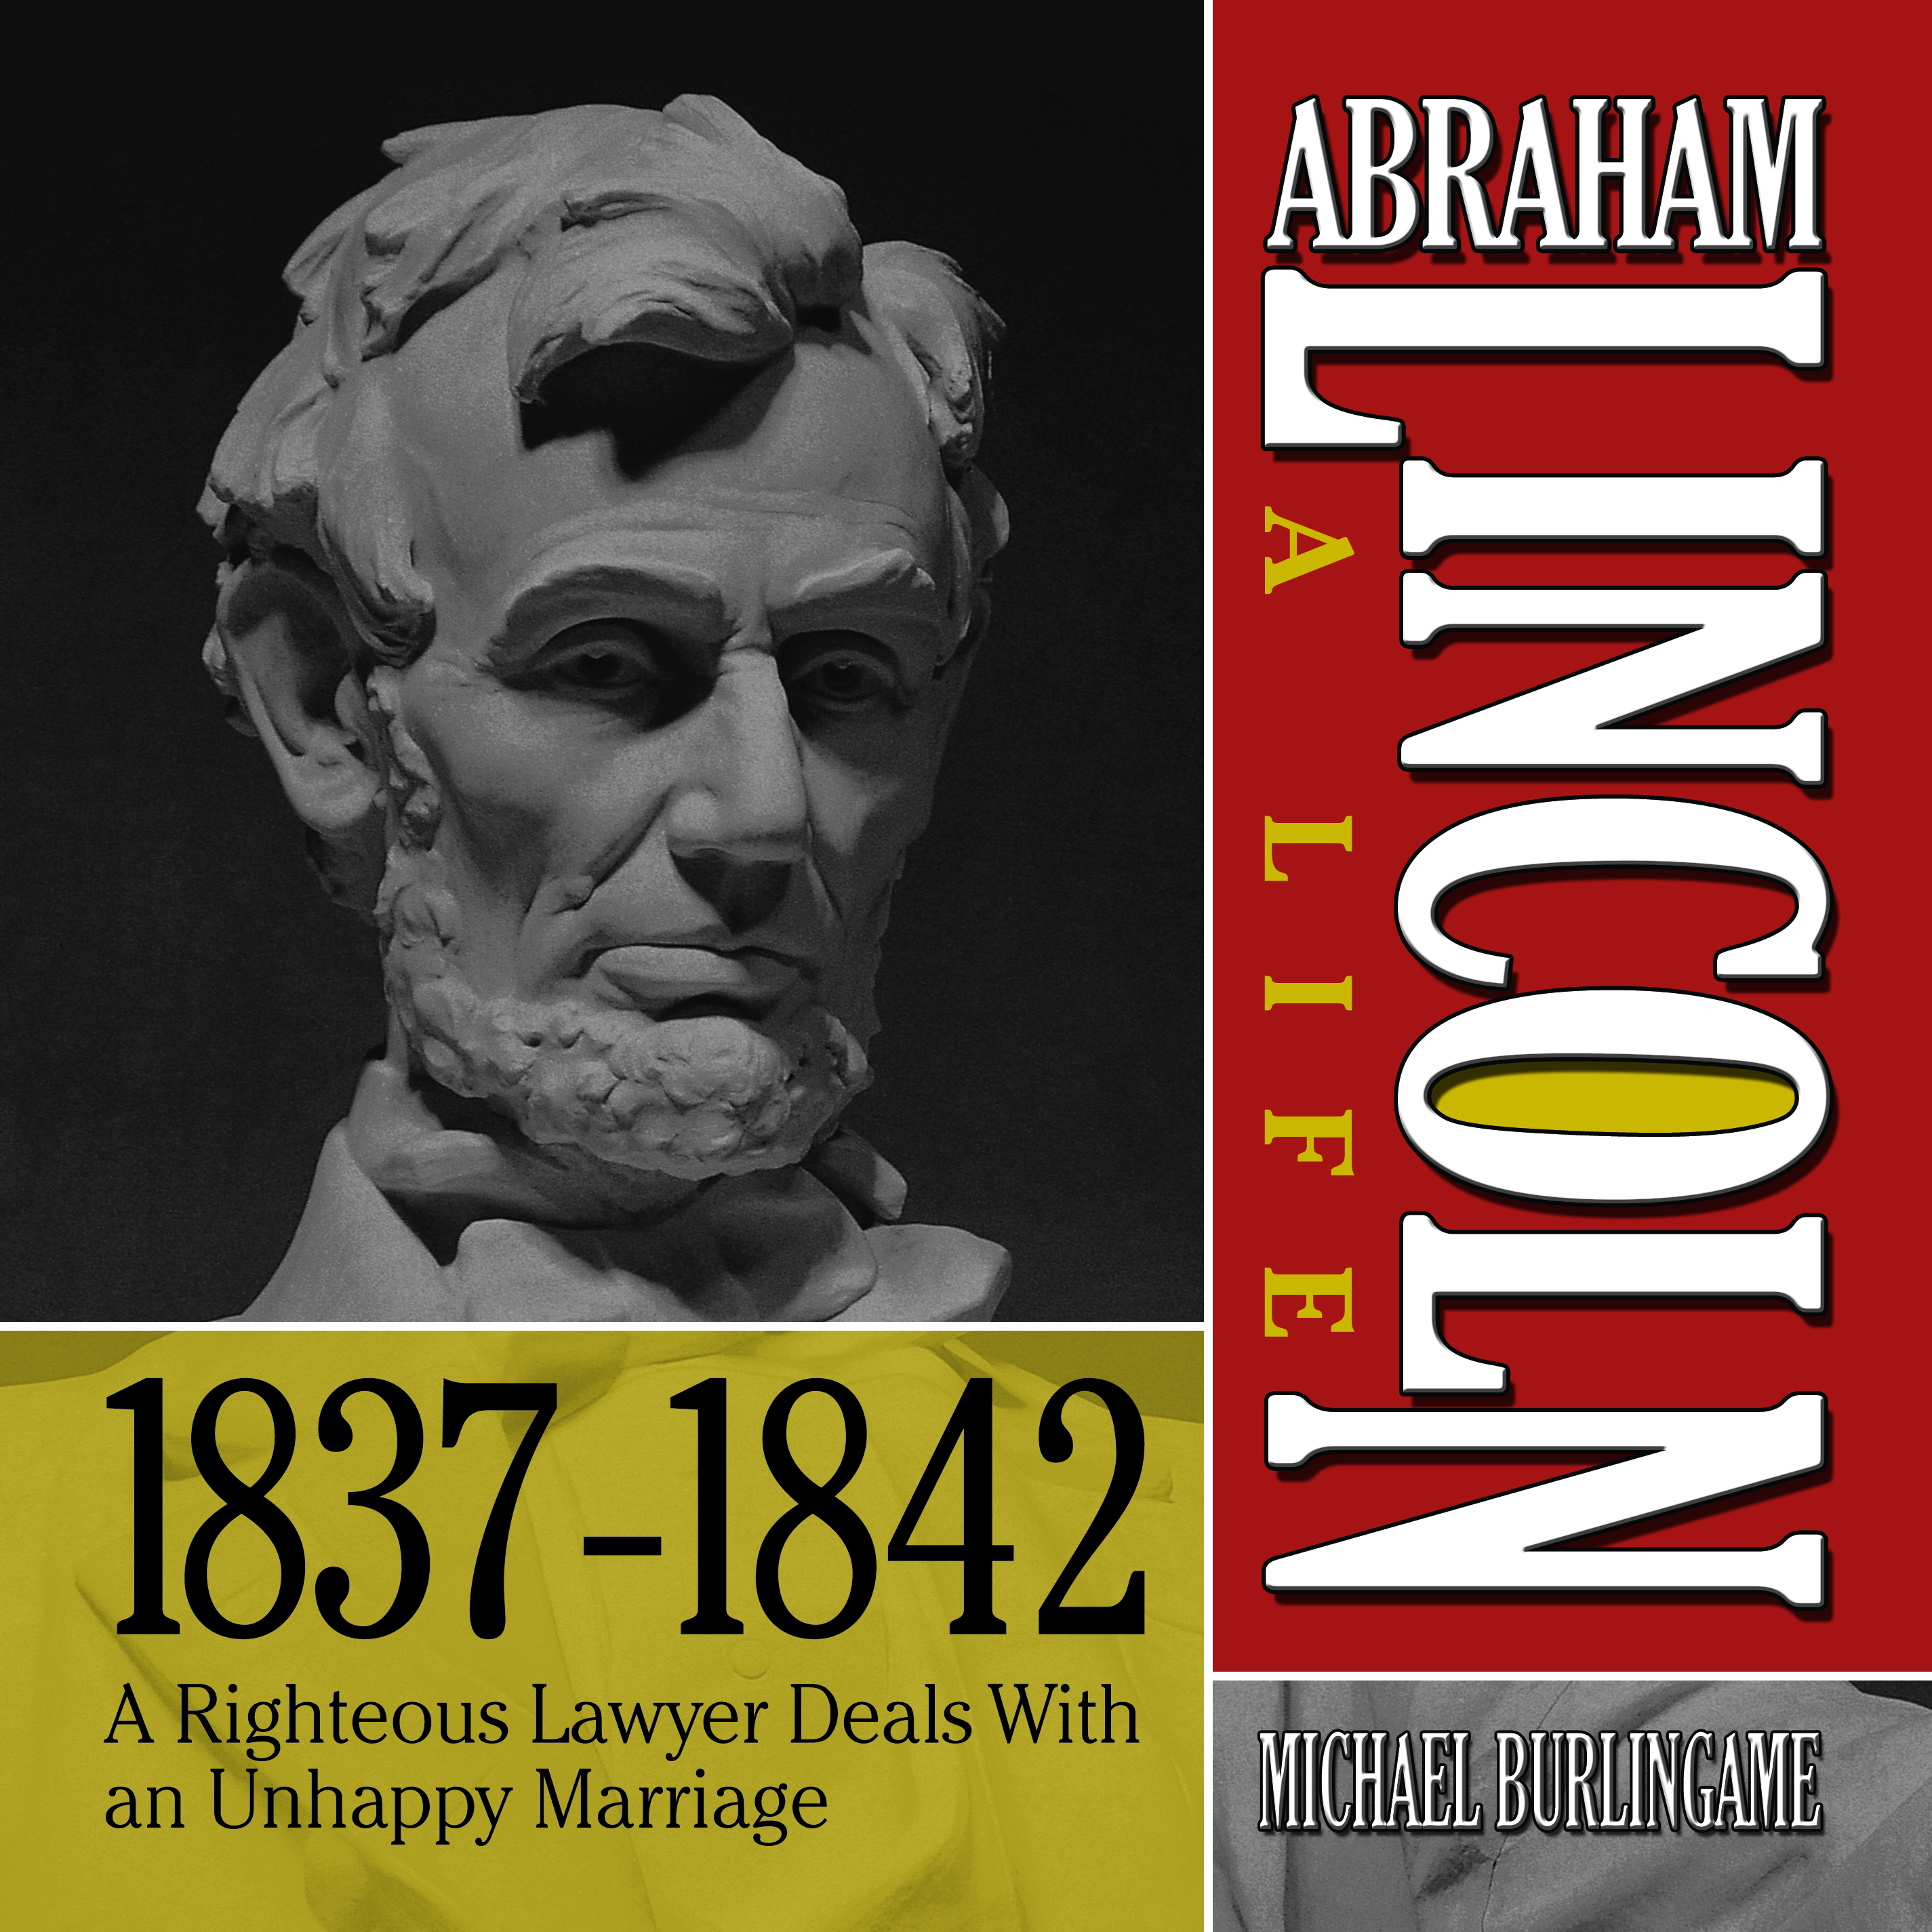 Printable Abraham Lincoln: A Life  1837-1842: A Righteous Lawyer Deals With an Unhappy Marriage Audiobook Cover Art